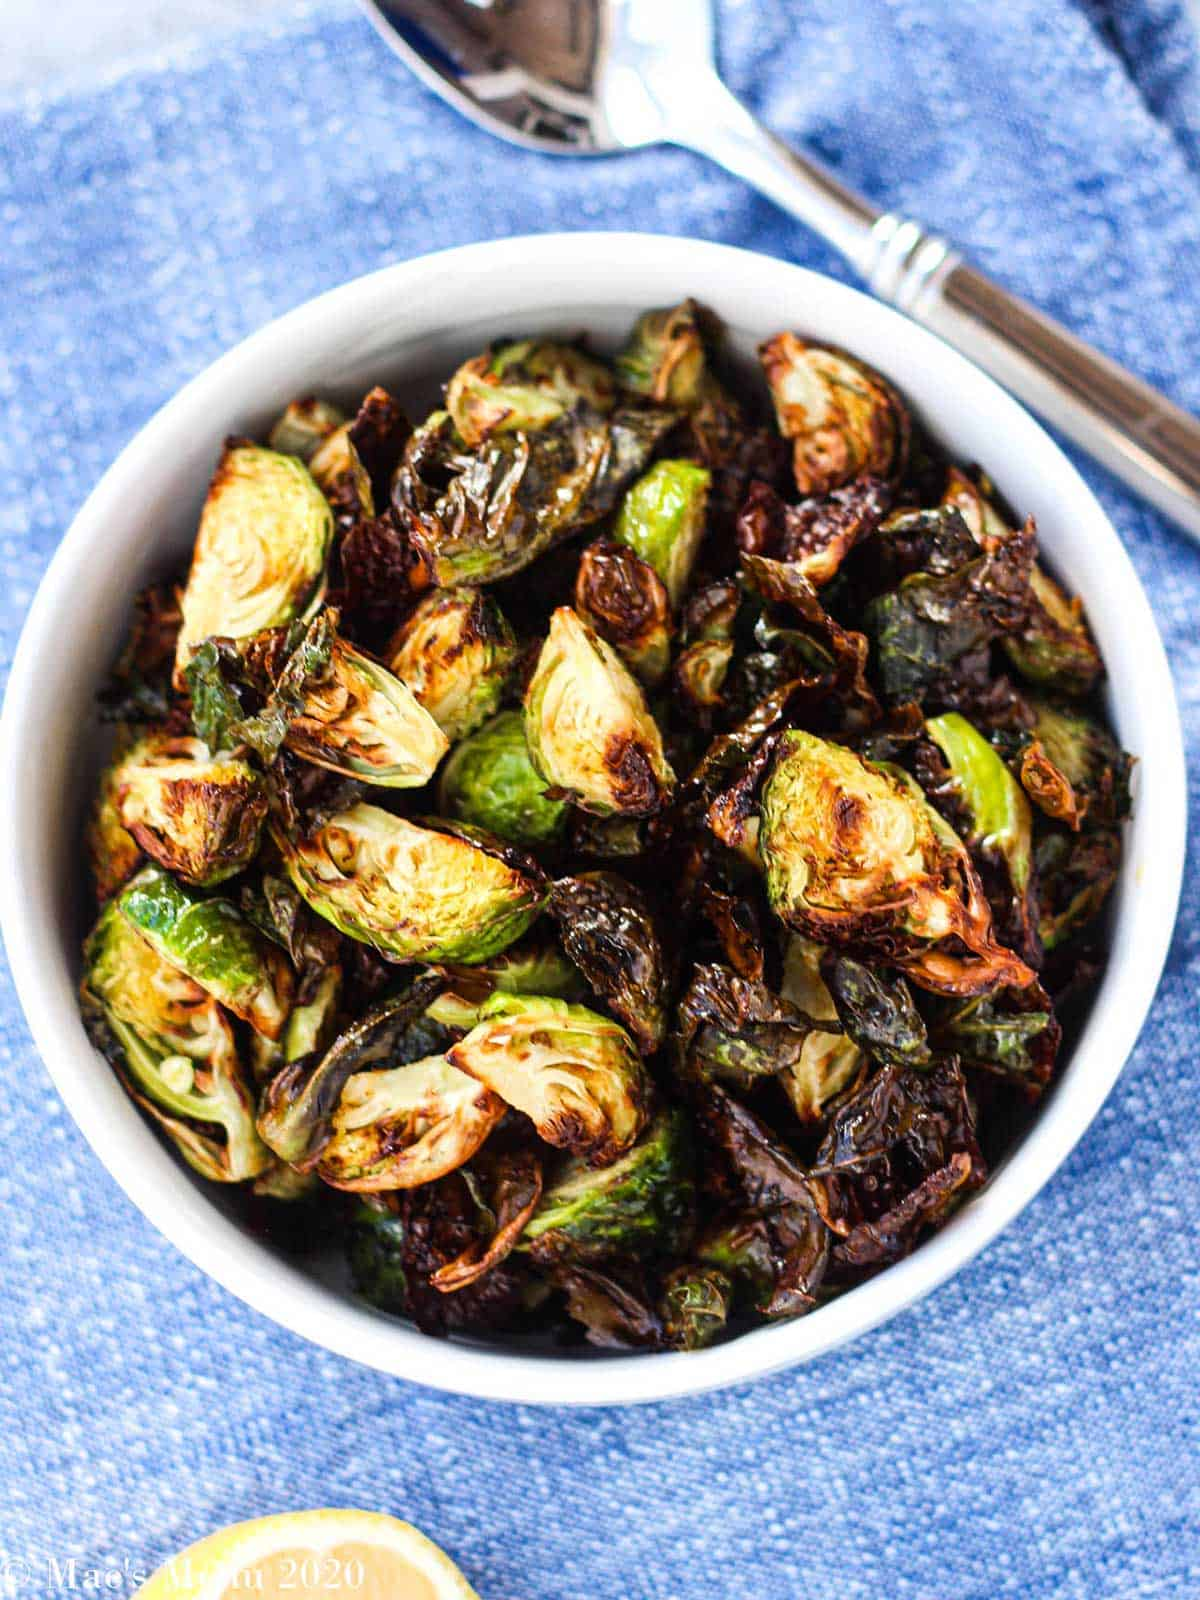 Cooked brussel sprouts in a white bowl on blue surface with spoon and lemon in frame.